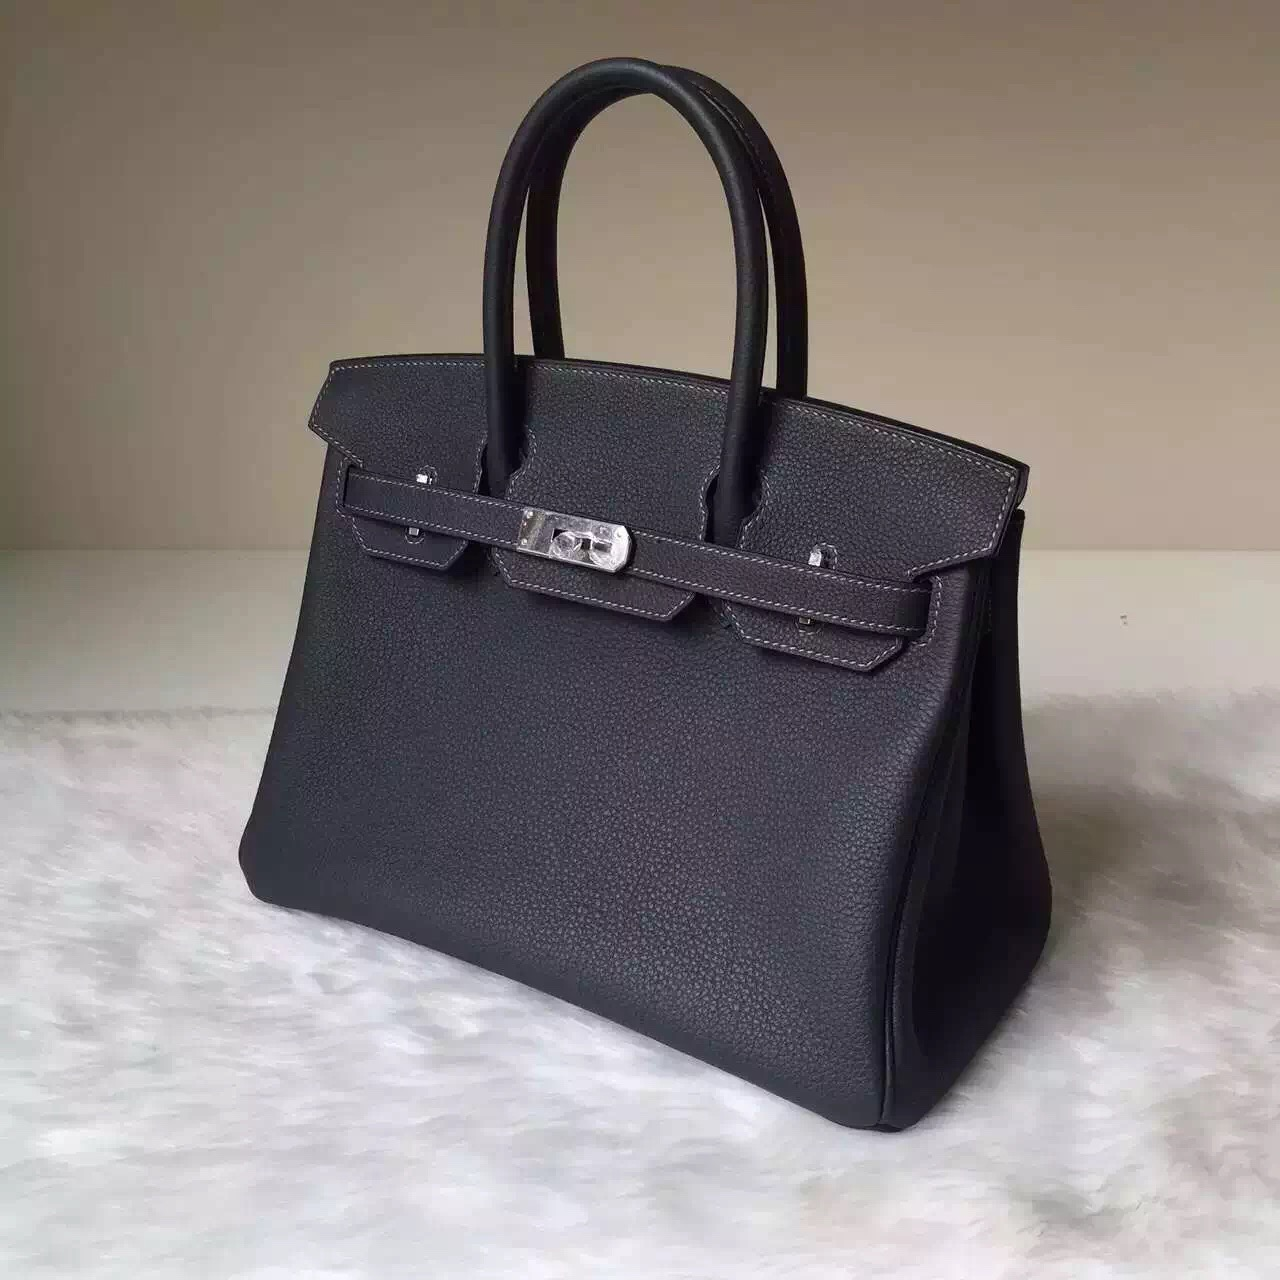 Wholesale Hermes 8F Etain Grey Togo Calfskin Leather Birkin Bag30cm